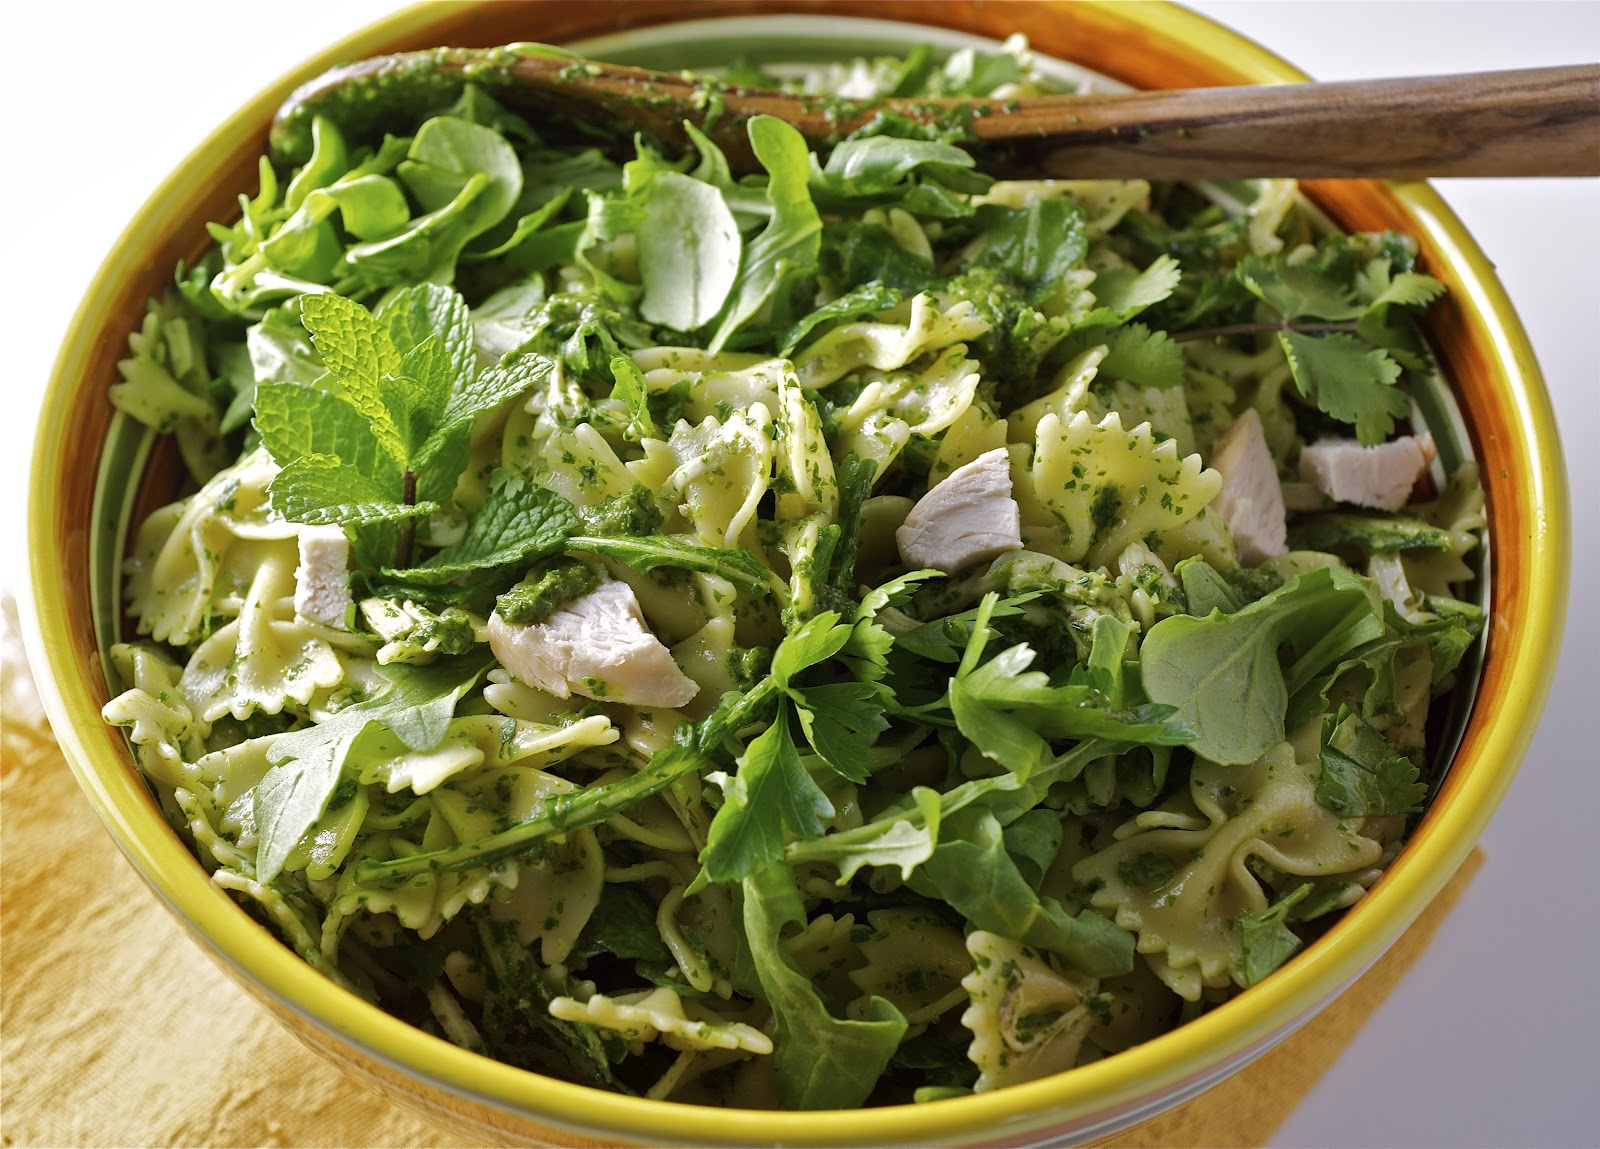 Pasta salad with arugula & herbs